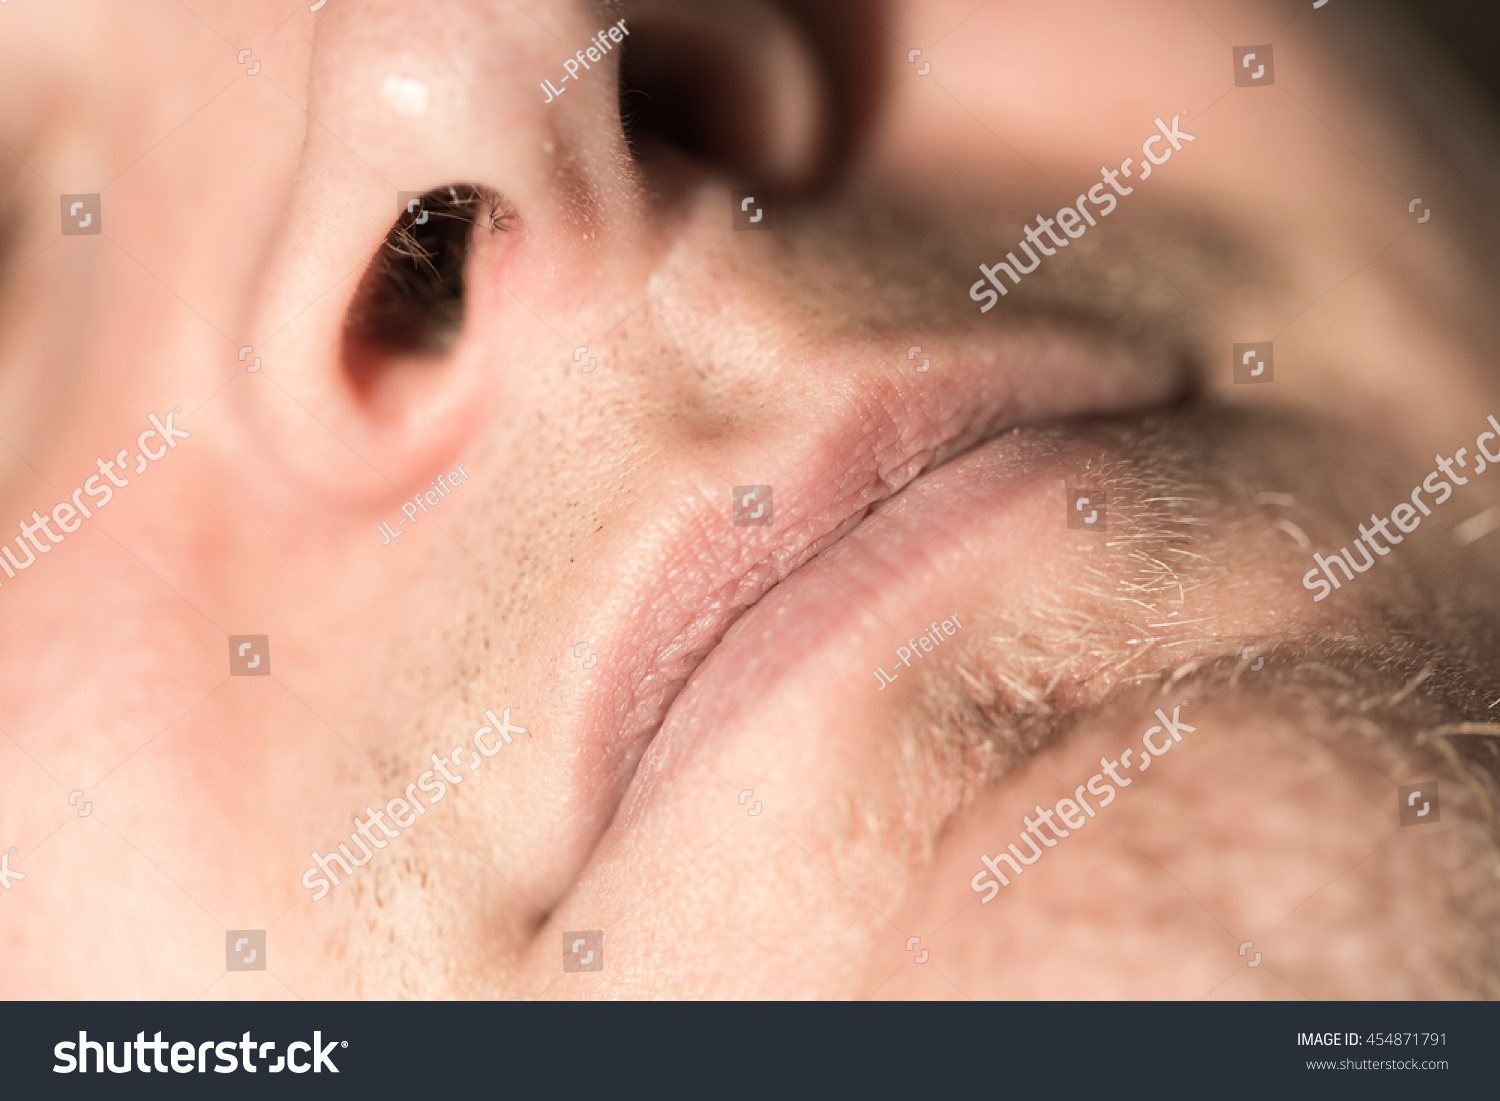 Extreme Anatomy Macro Relaxed Man Face Stock Photo (Royalty Free ...